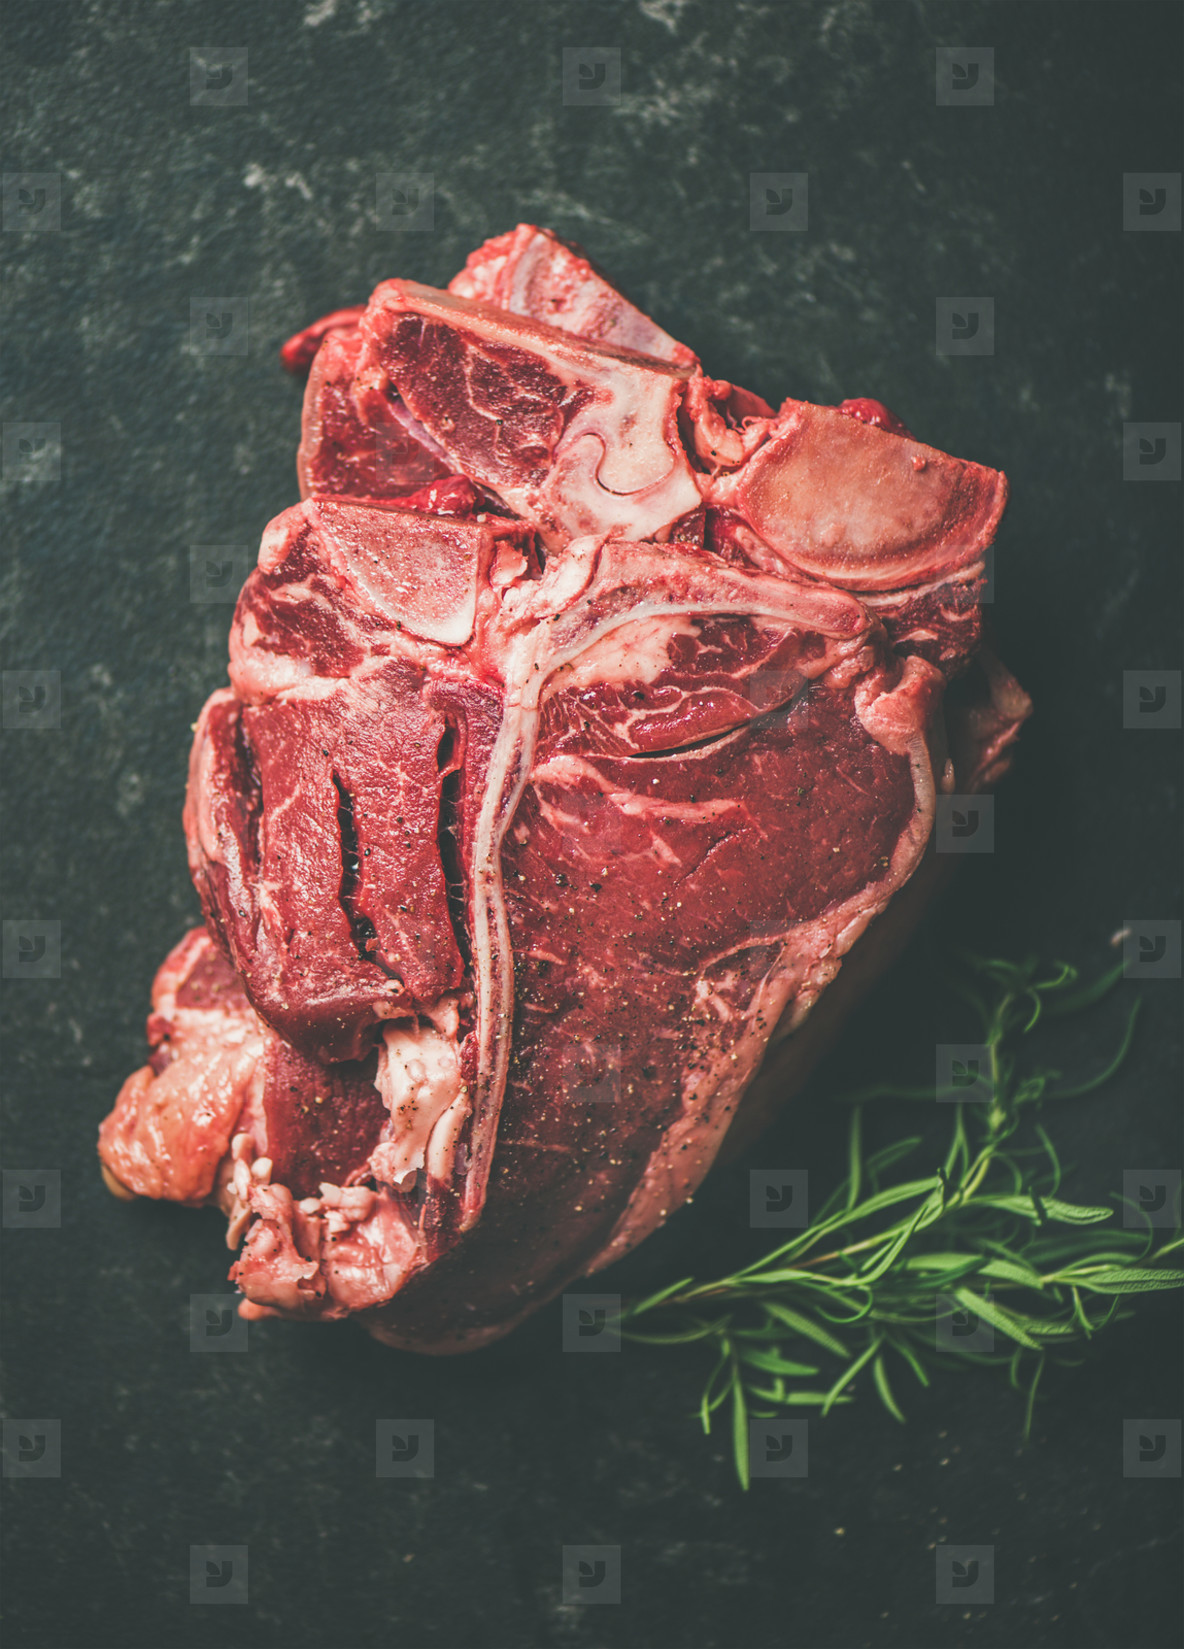 Raw beef meat t bone steaks with rosemary placed in stack